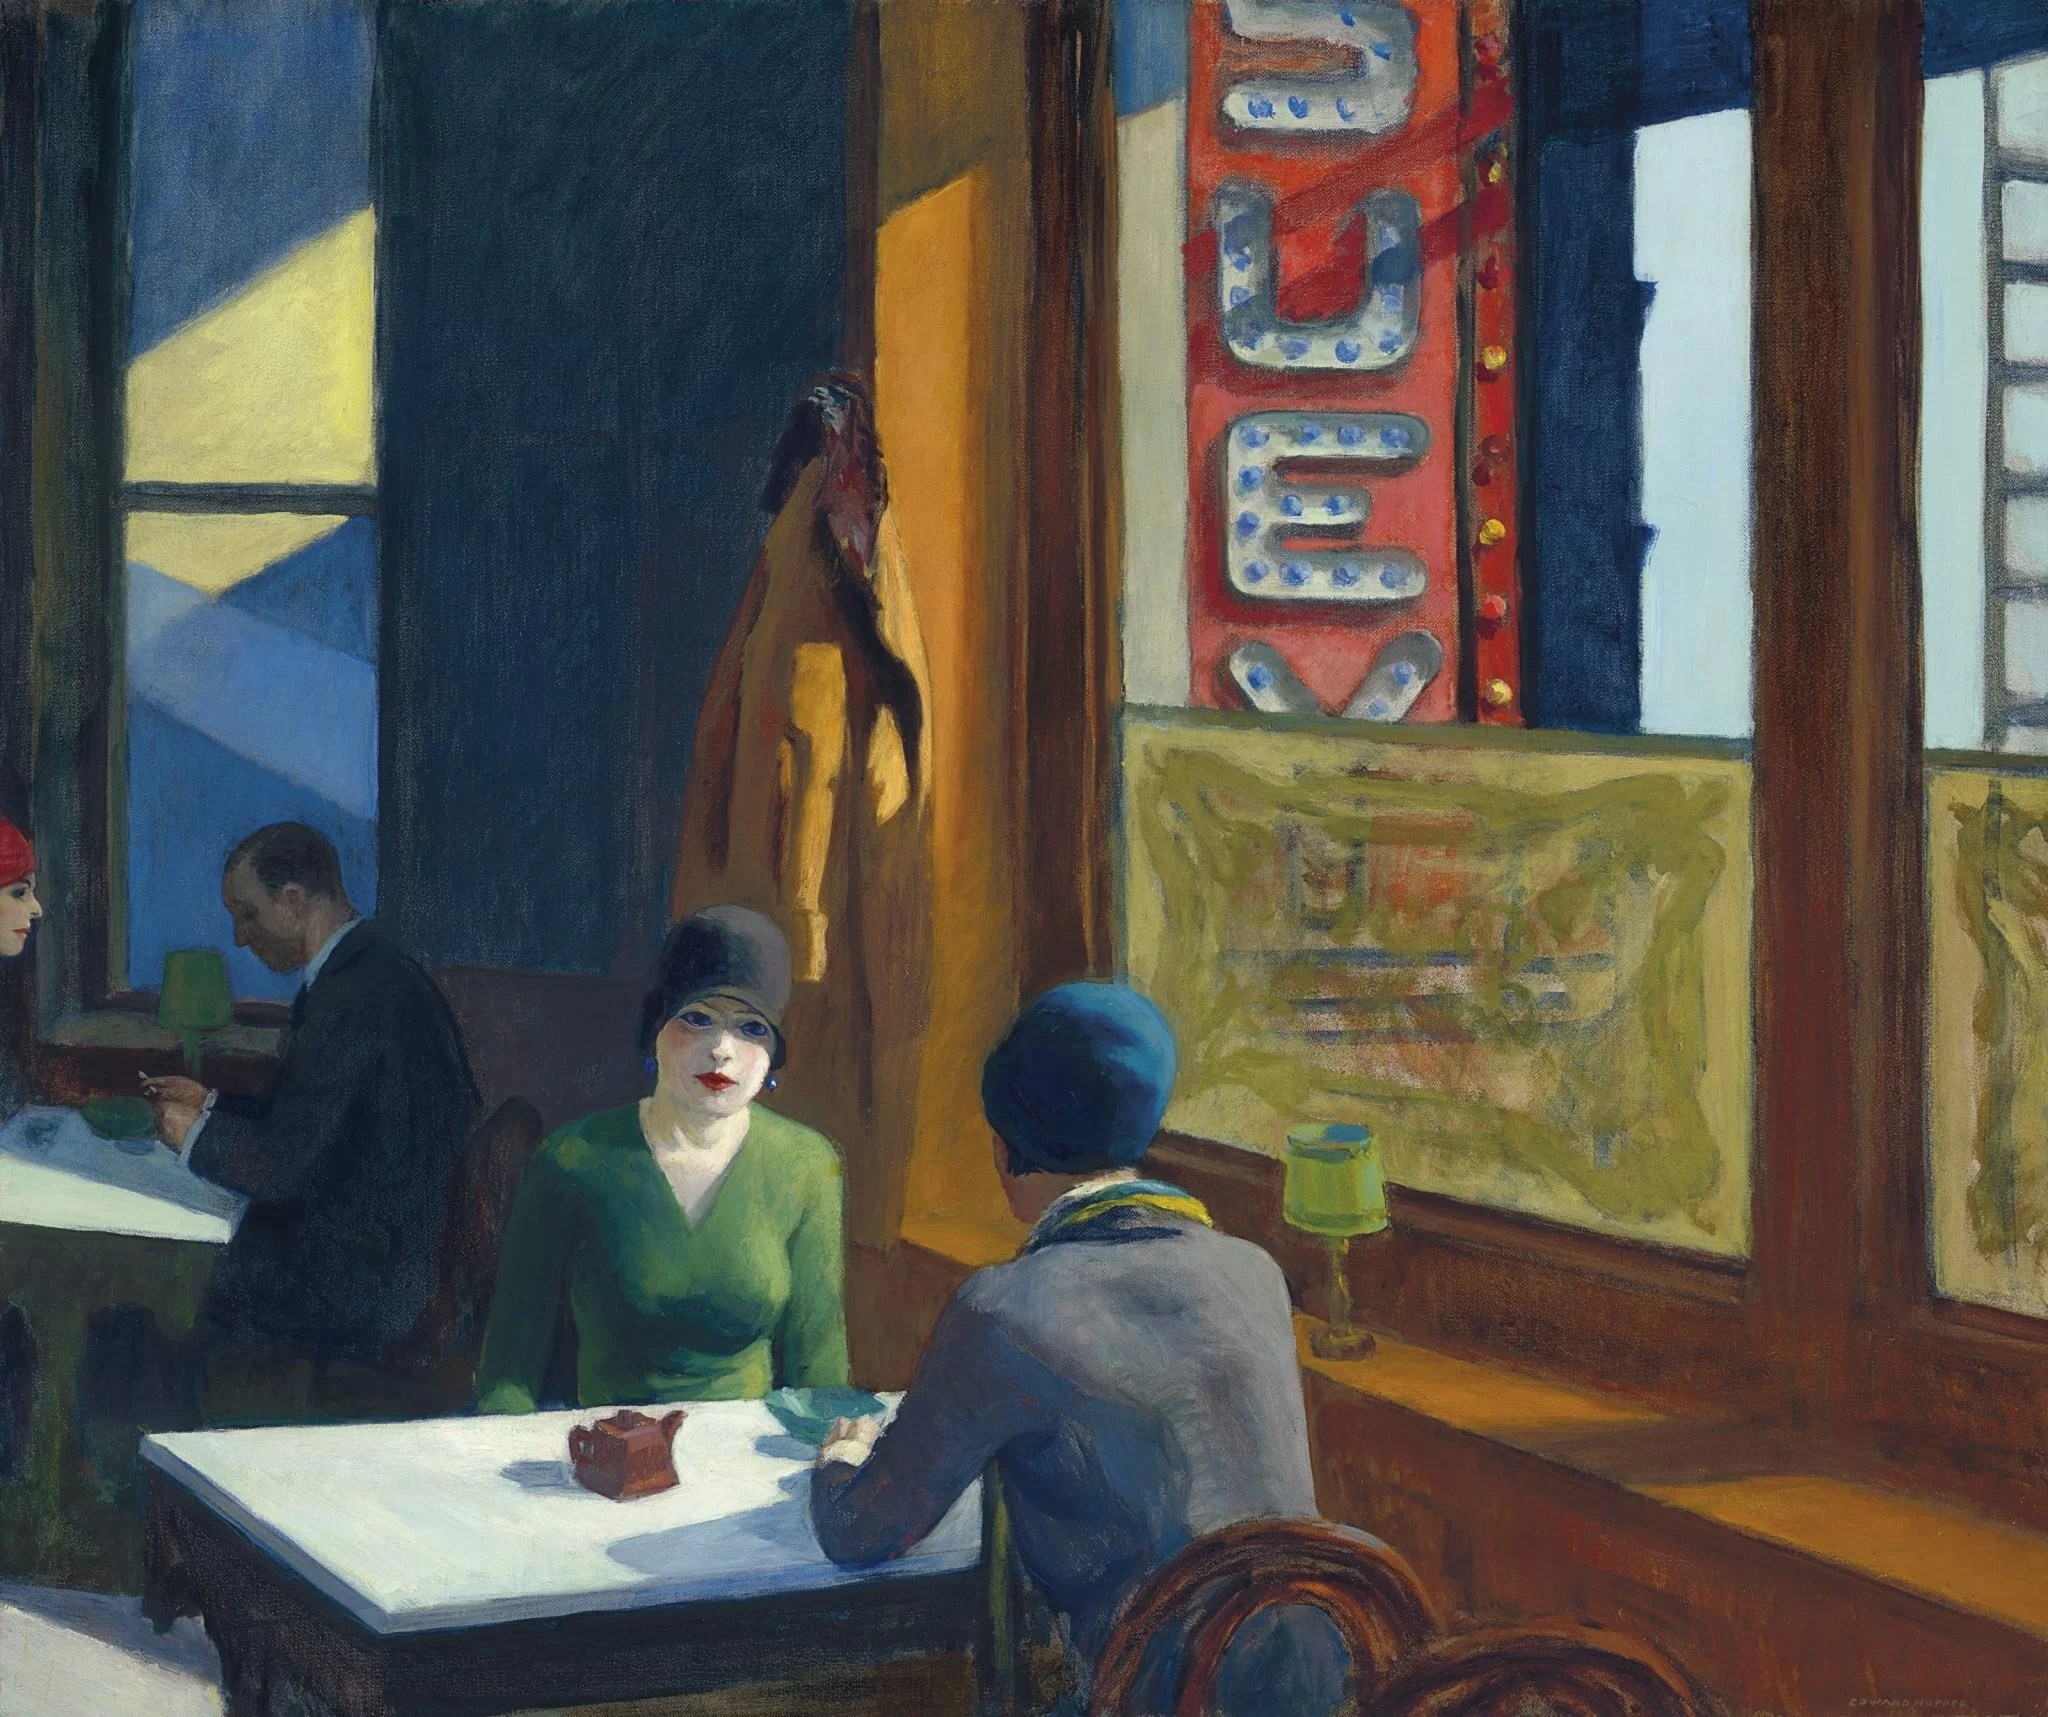 La Chambre A New York Edward Hopper Edward Hopper A 91 2 Milioni Guida L 39asta Ebsworth Da